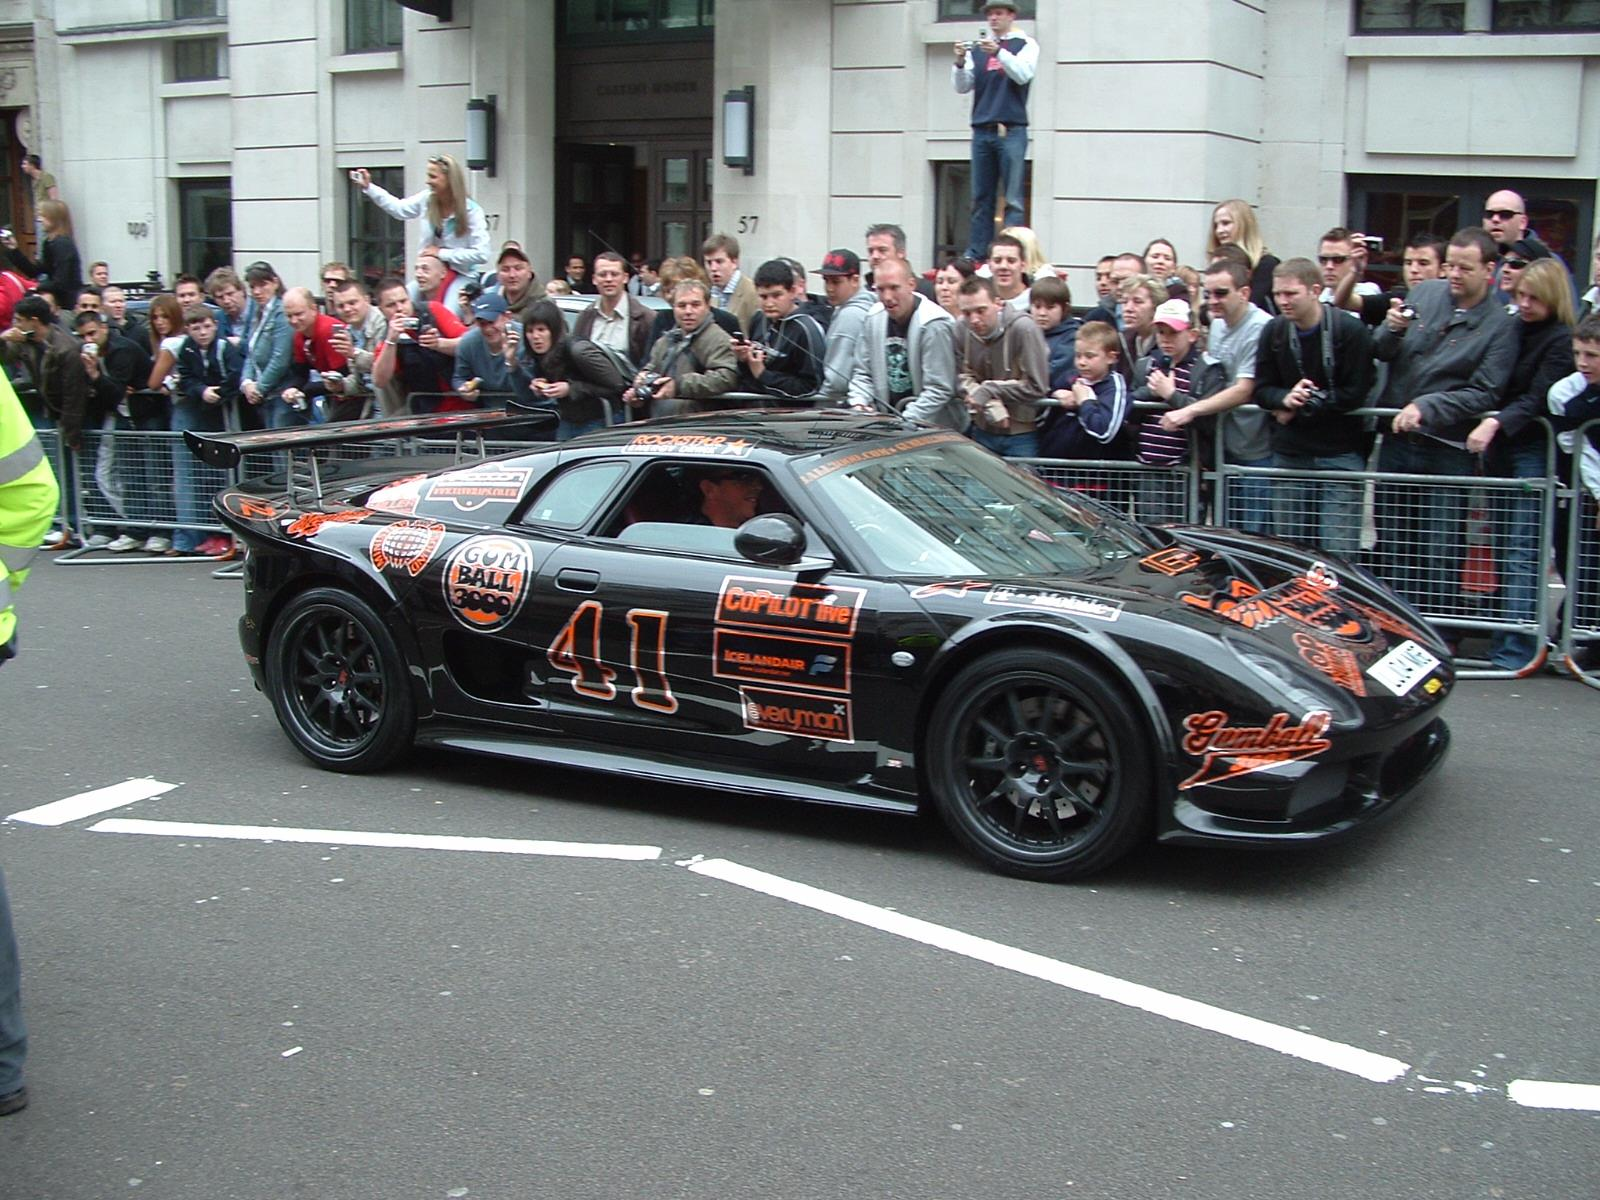 Pictures of noble m12 gto #13